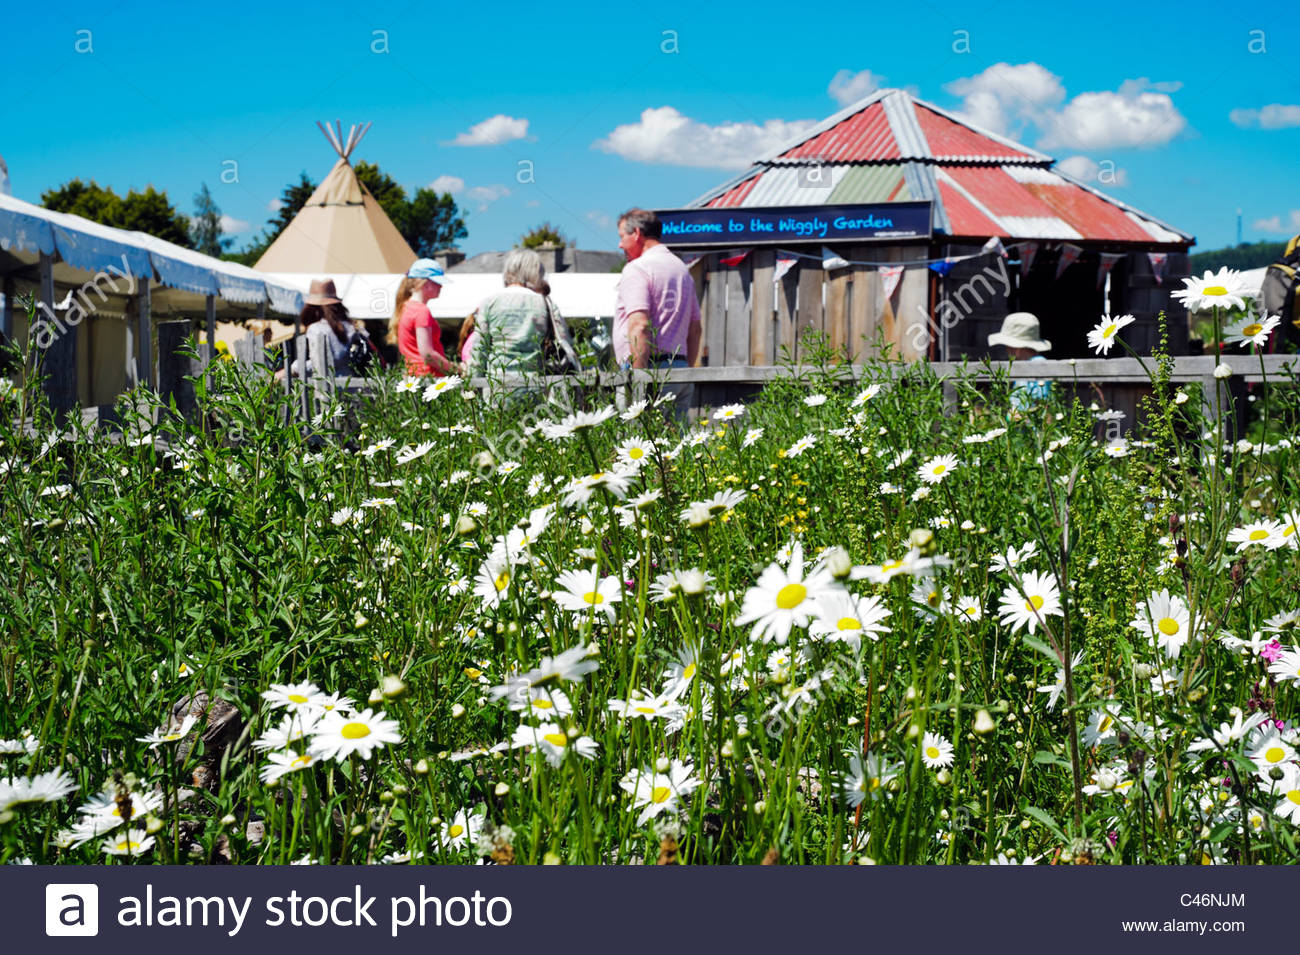 Hay on Wye, Wales, UK. Hay festival wiggly garden with white daisies. - Stock Image